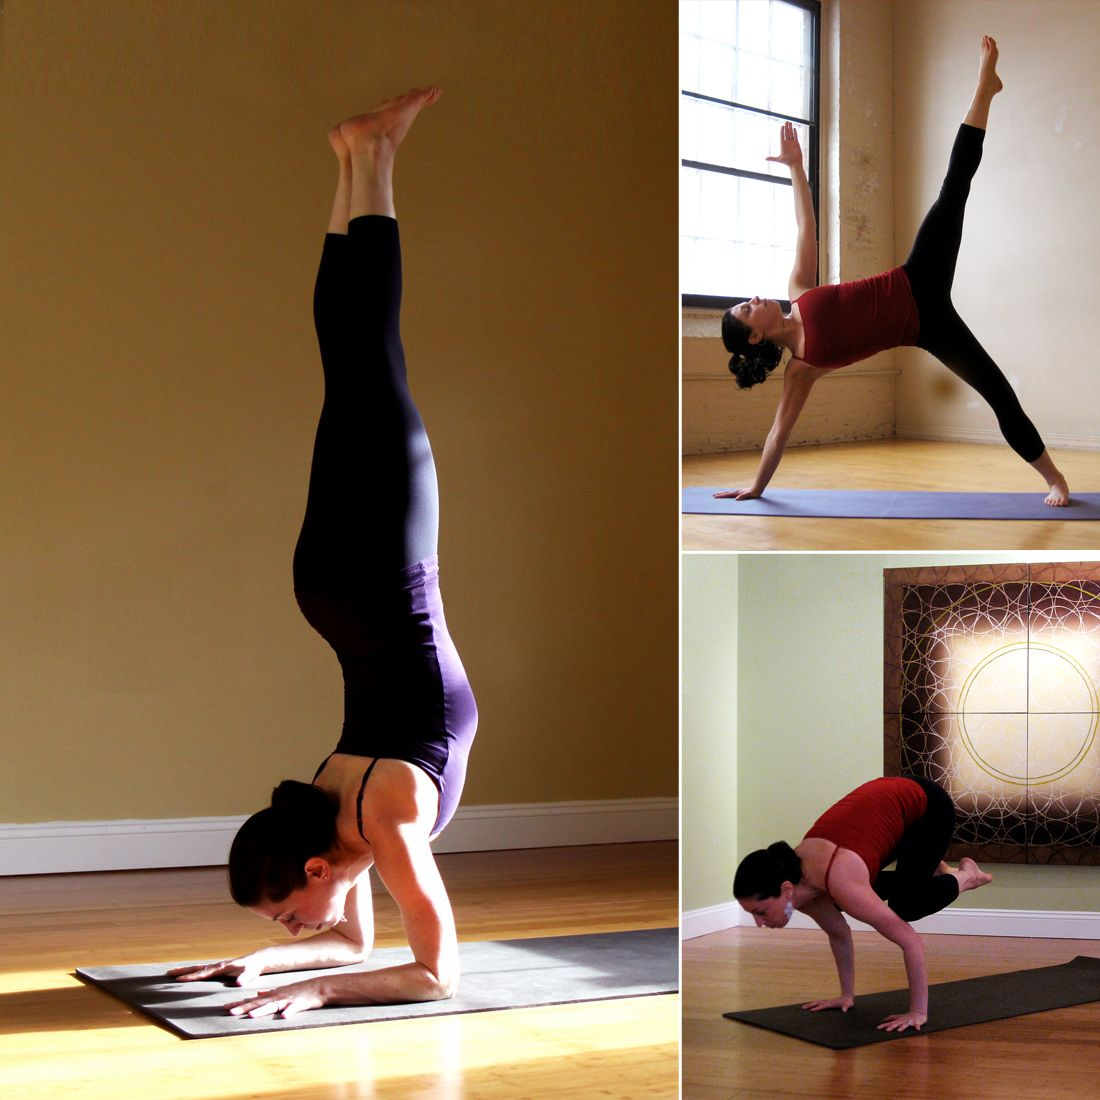 5 Challenging Yoga Poses That Benefit From a Strong Core...welp, two outta 5